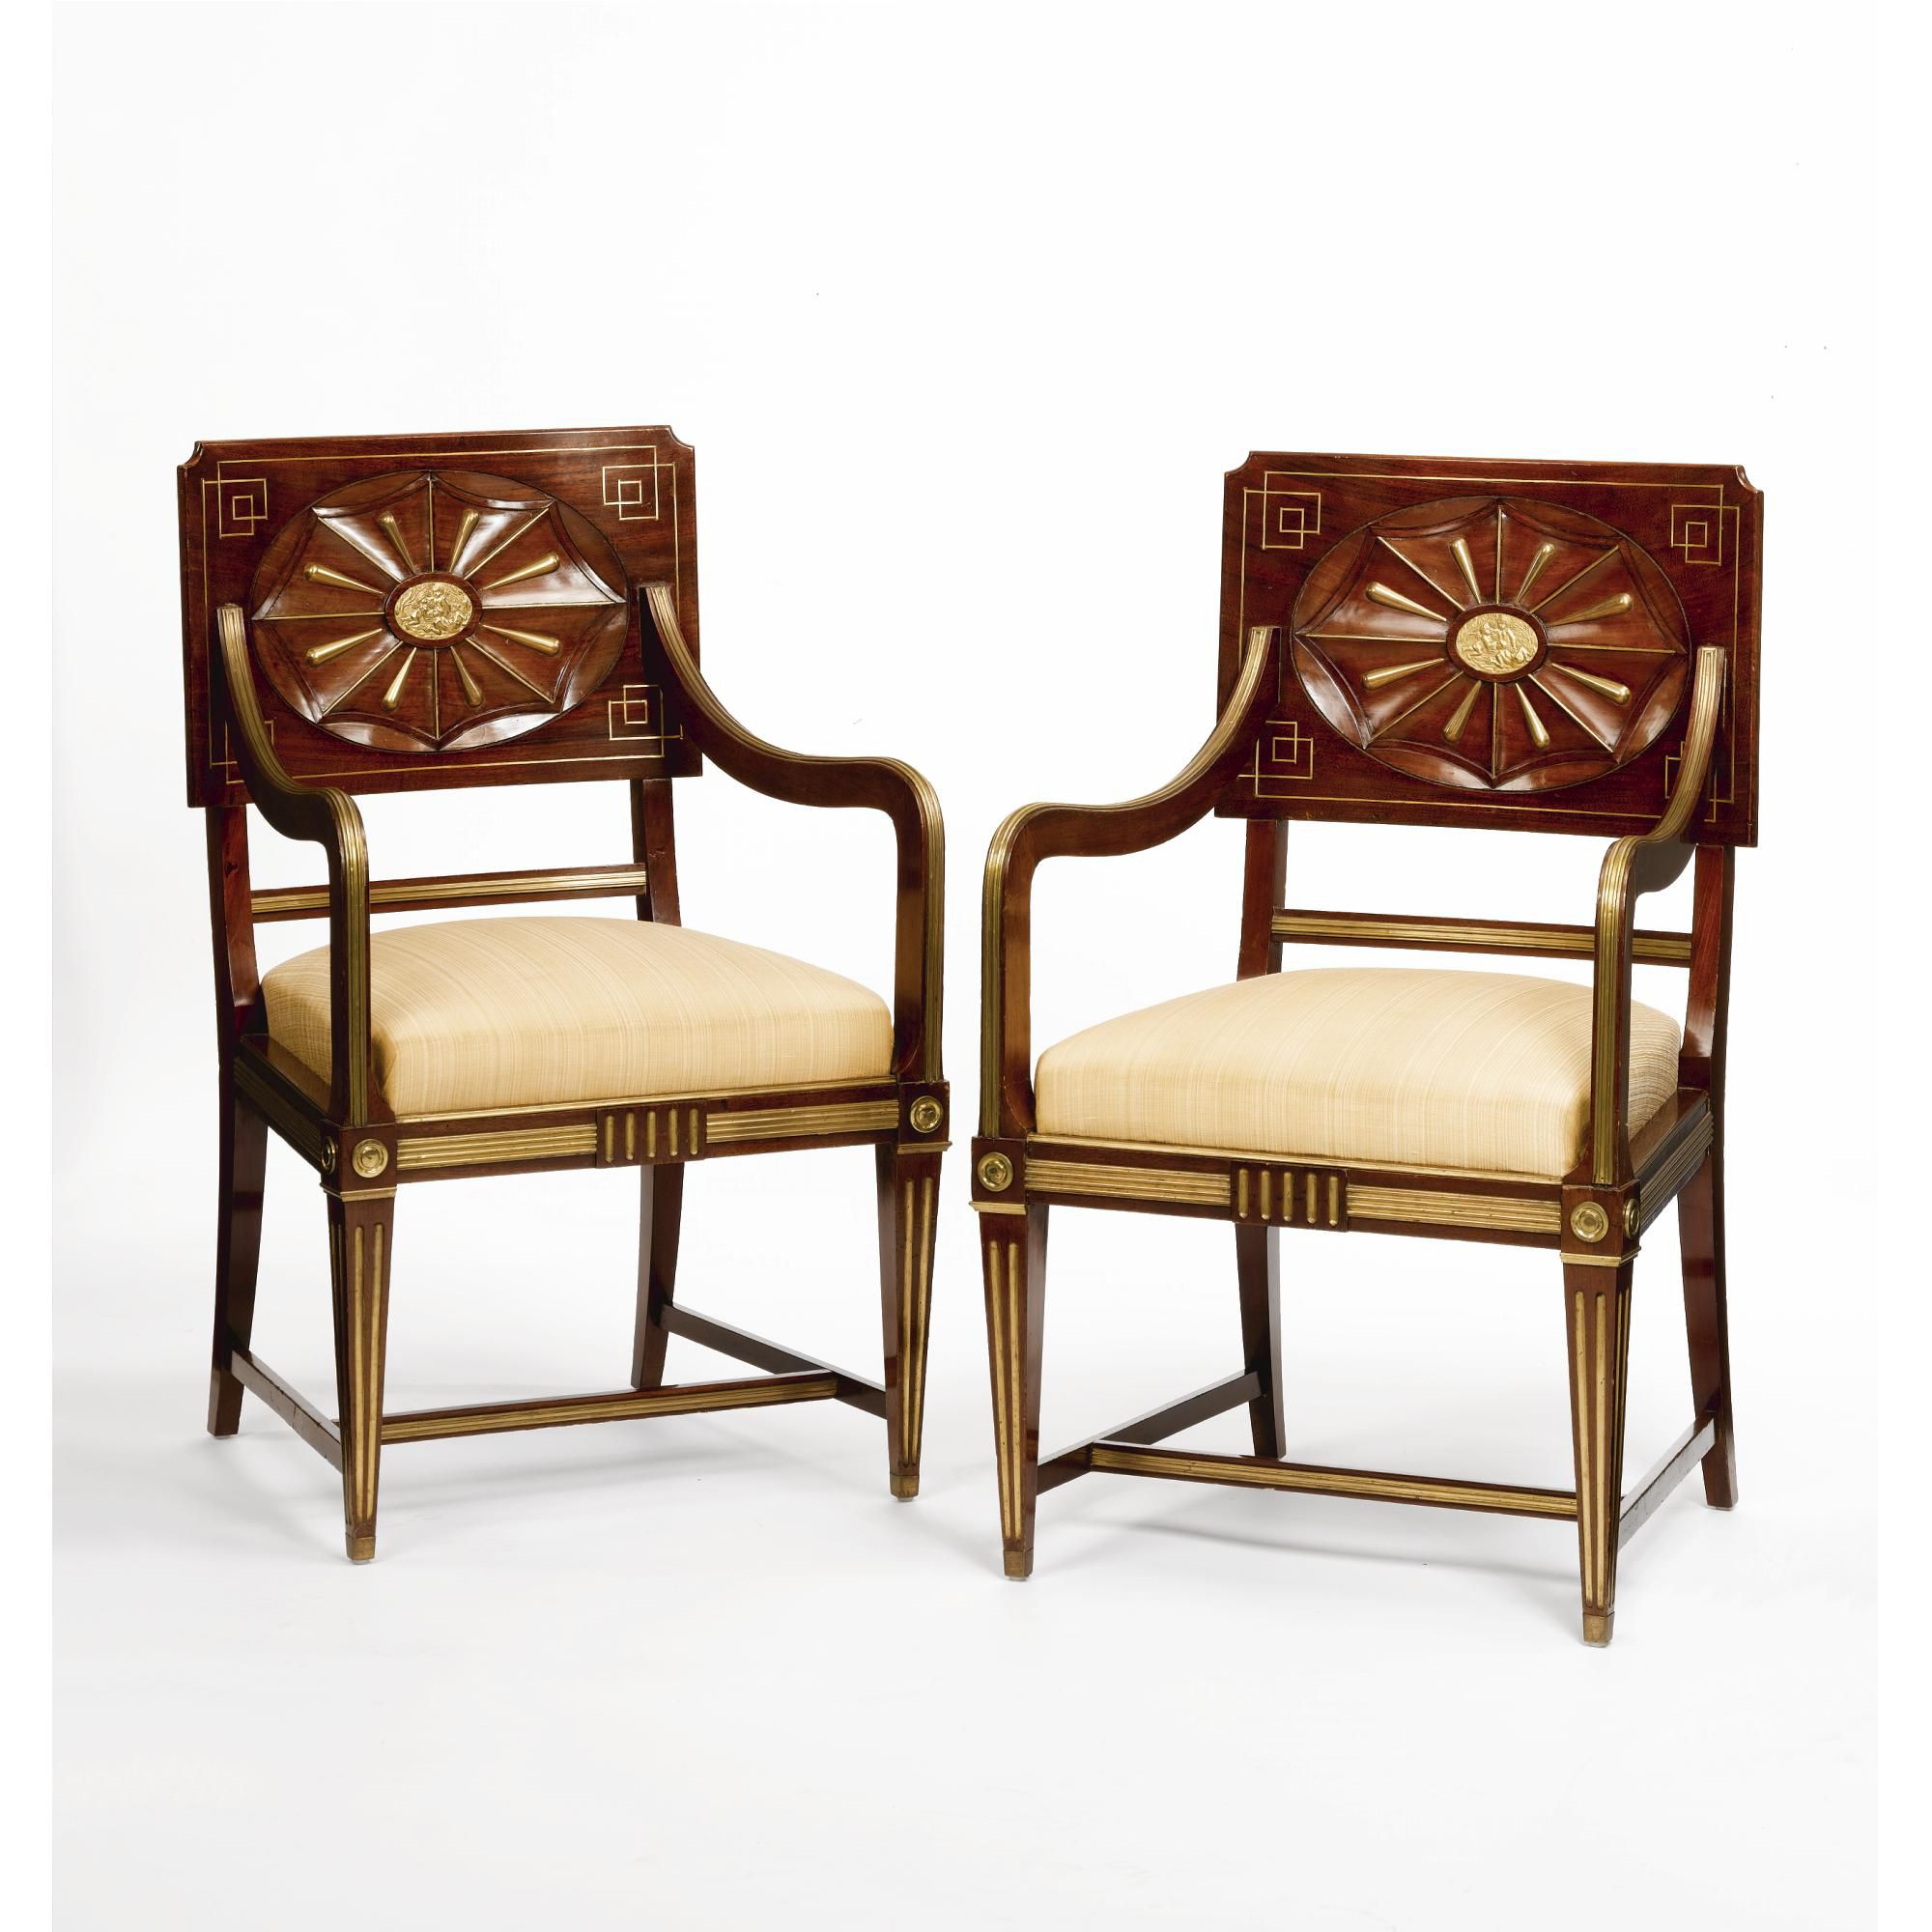 A pair of Russian neoclassical brass-mounted mahogany armchairs mid 19th century | http://www.sothebys.com/en/auctions/ecatalogue/2008/fine-french-continental-furniture-including-european-works-of-art-and-tapestries-ceramics-and-carpets-n08426/lot.340.html